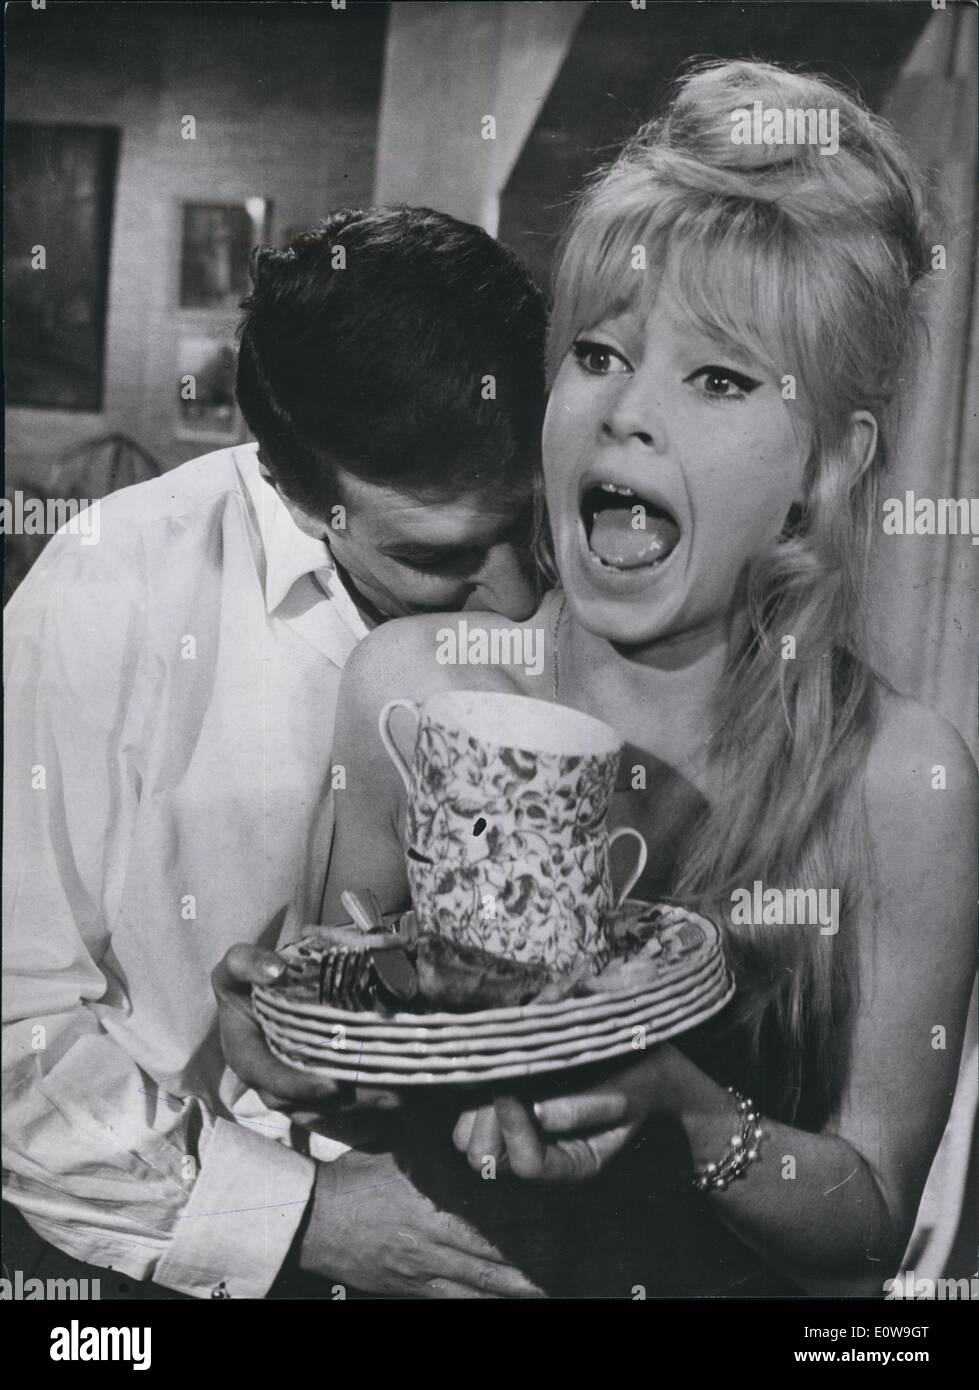 Apr. 04, 1962 - The last few Parisian scenes of the movie ''A Warrior's Peace,'' based on Christiane Rochefort's novel, that stars Brigitte Bardot, have been finished and the whole team has gone to Florence where the second part of the movie will be filmed. Accident Durin - Stock Image